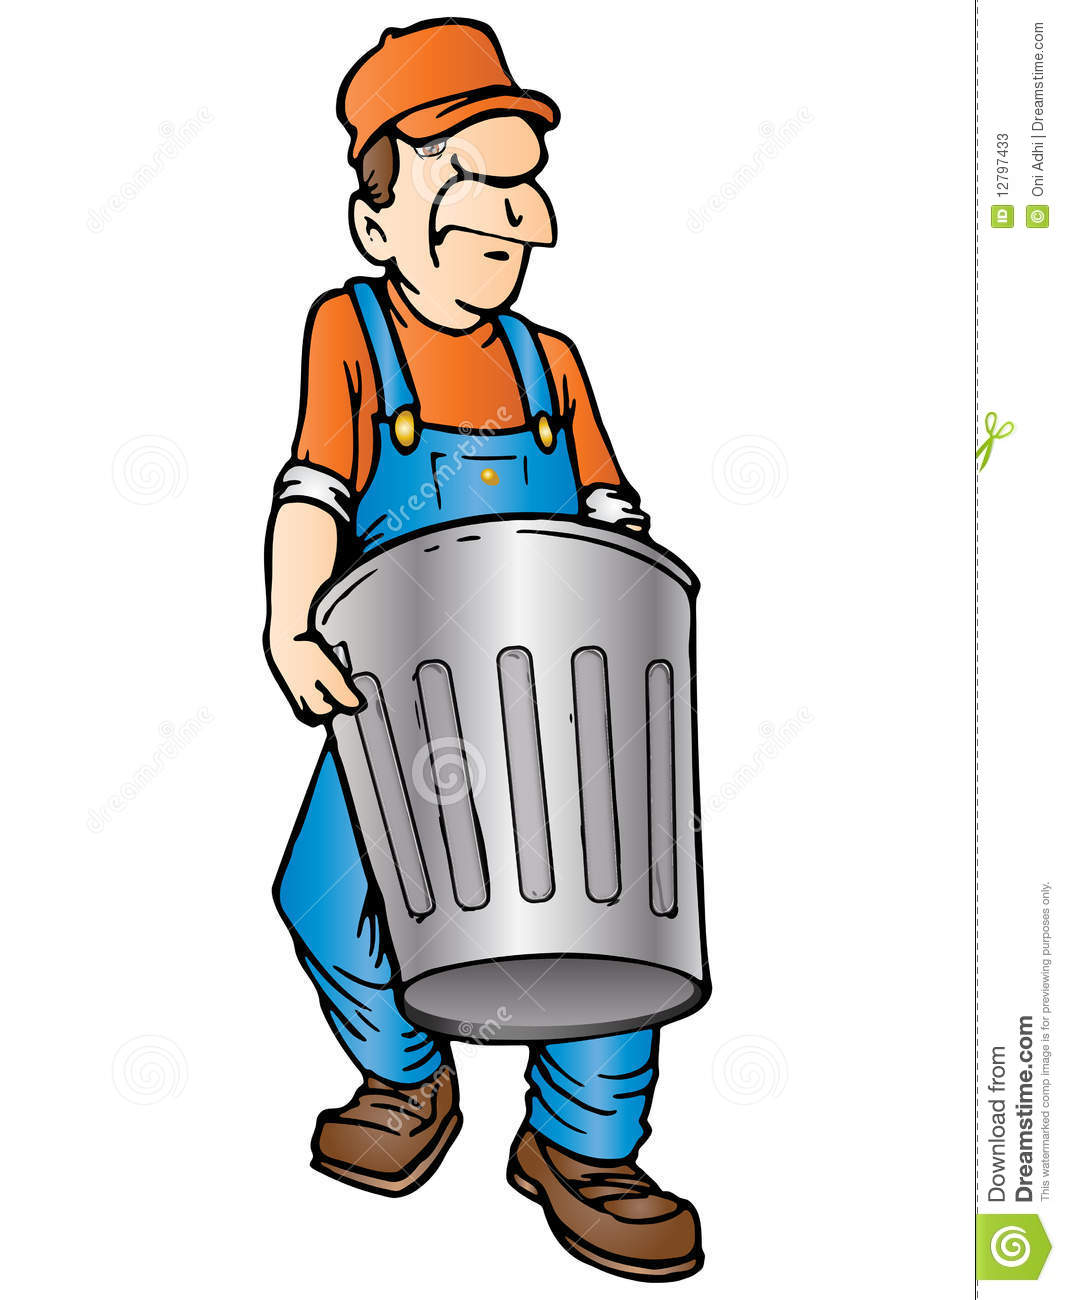 Garbage man clipart 4 » Clipart Station.